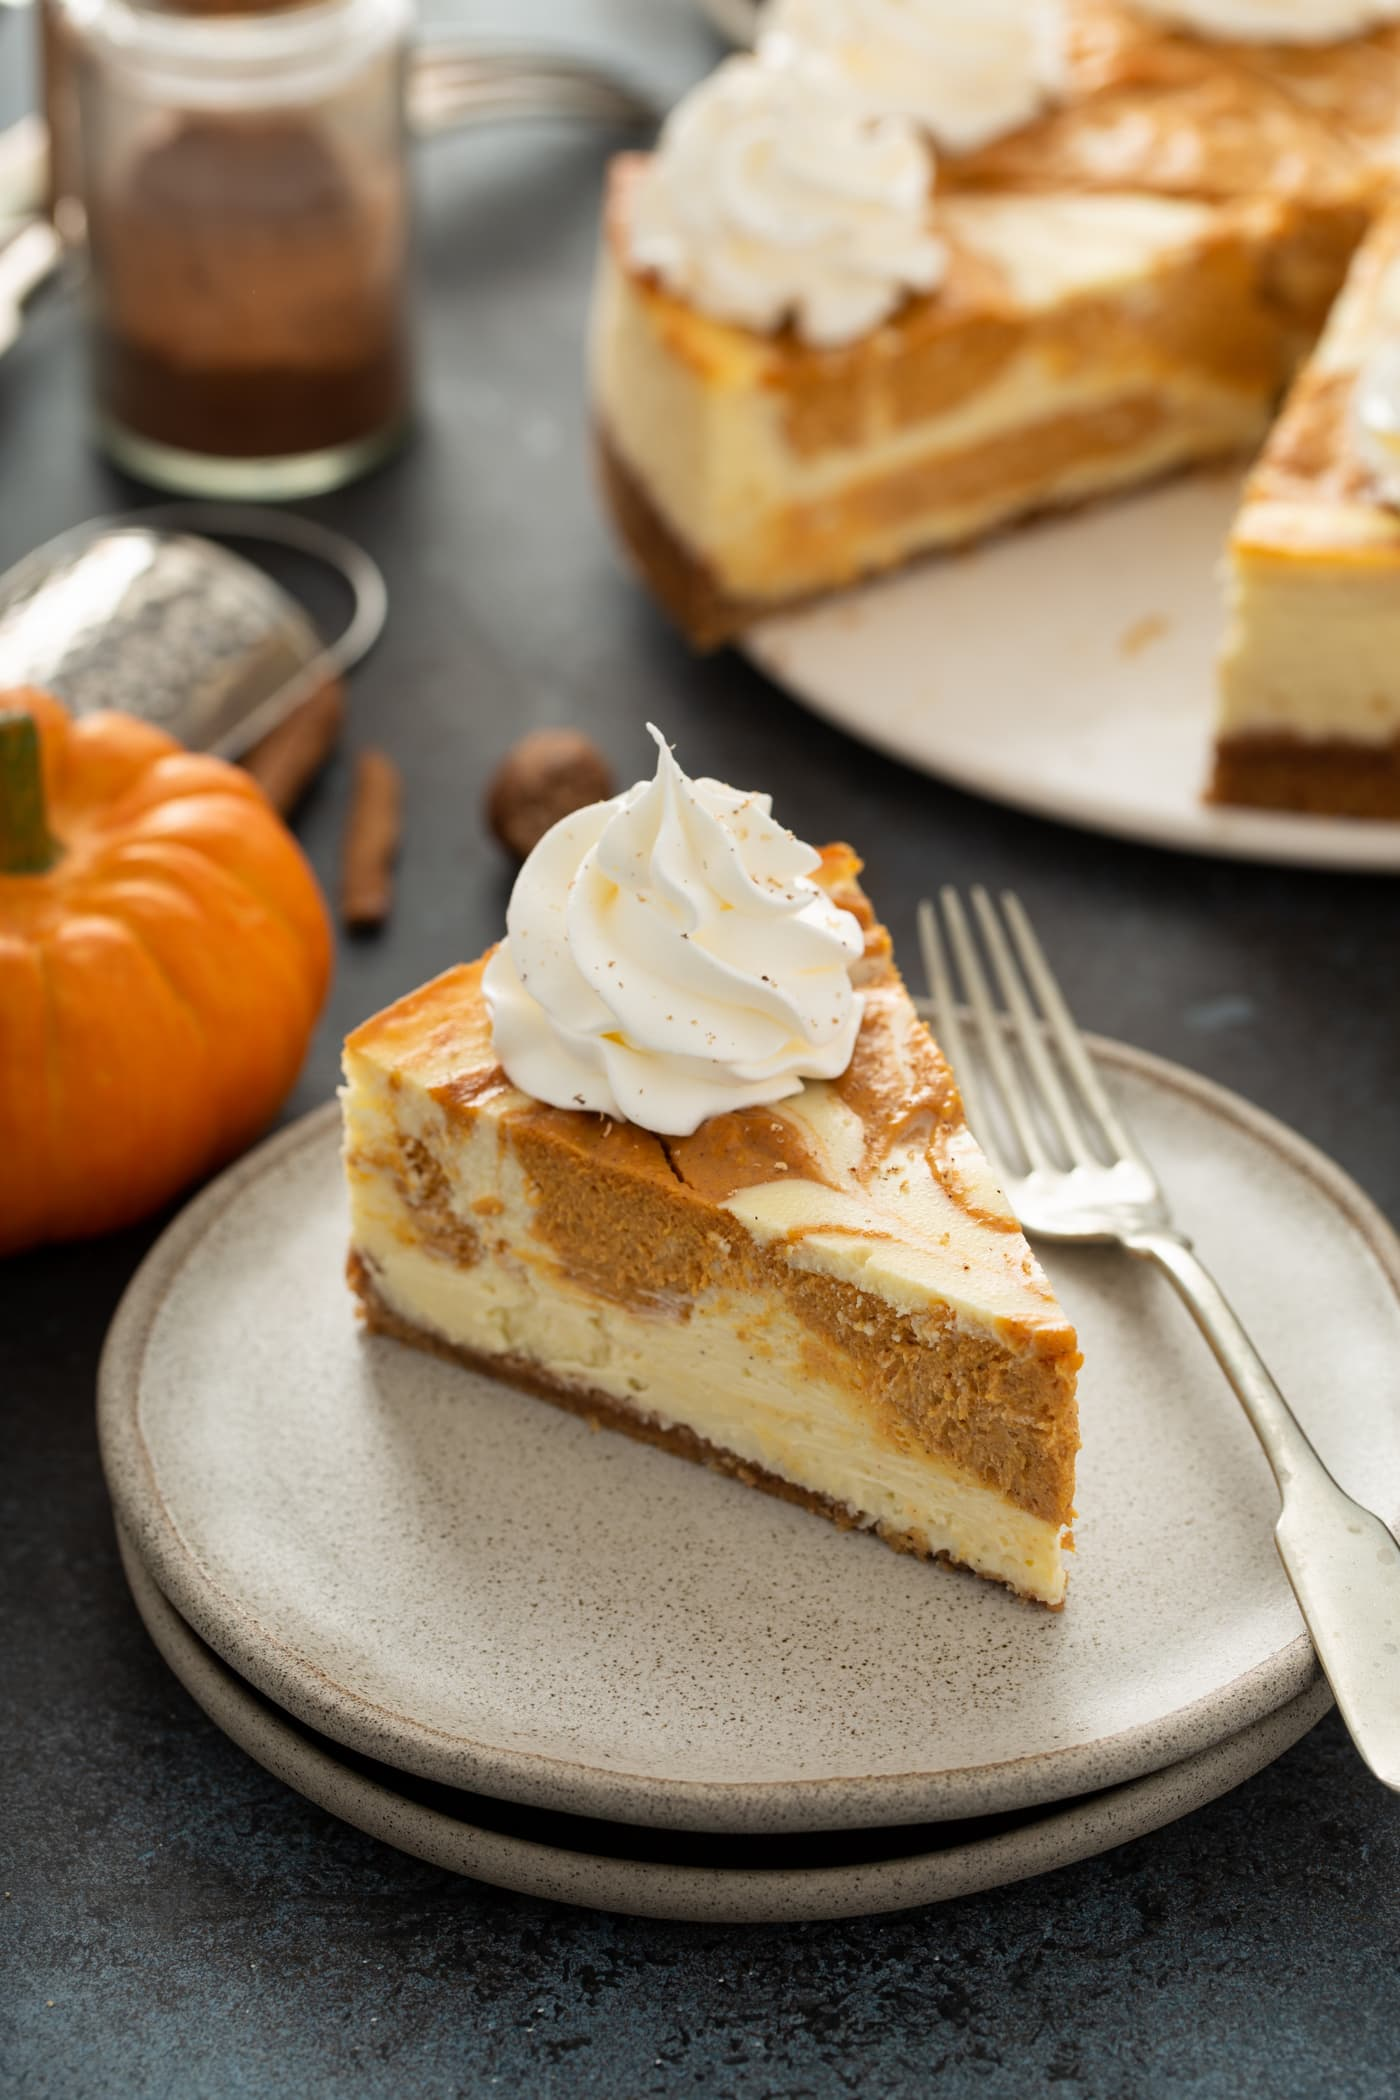 A slice of swirled pumpkin cheesecake on a dessert plate with a fork. The rest of the cheesecake, and a small pumpkin are in the background.